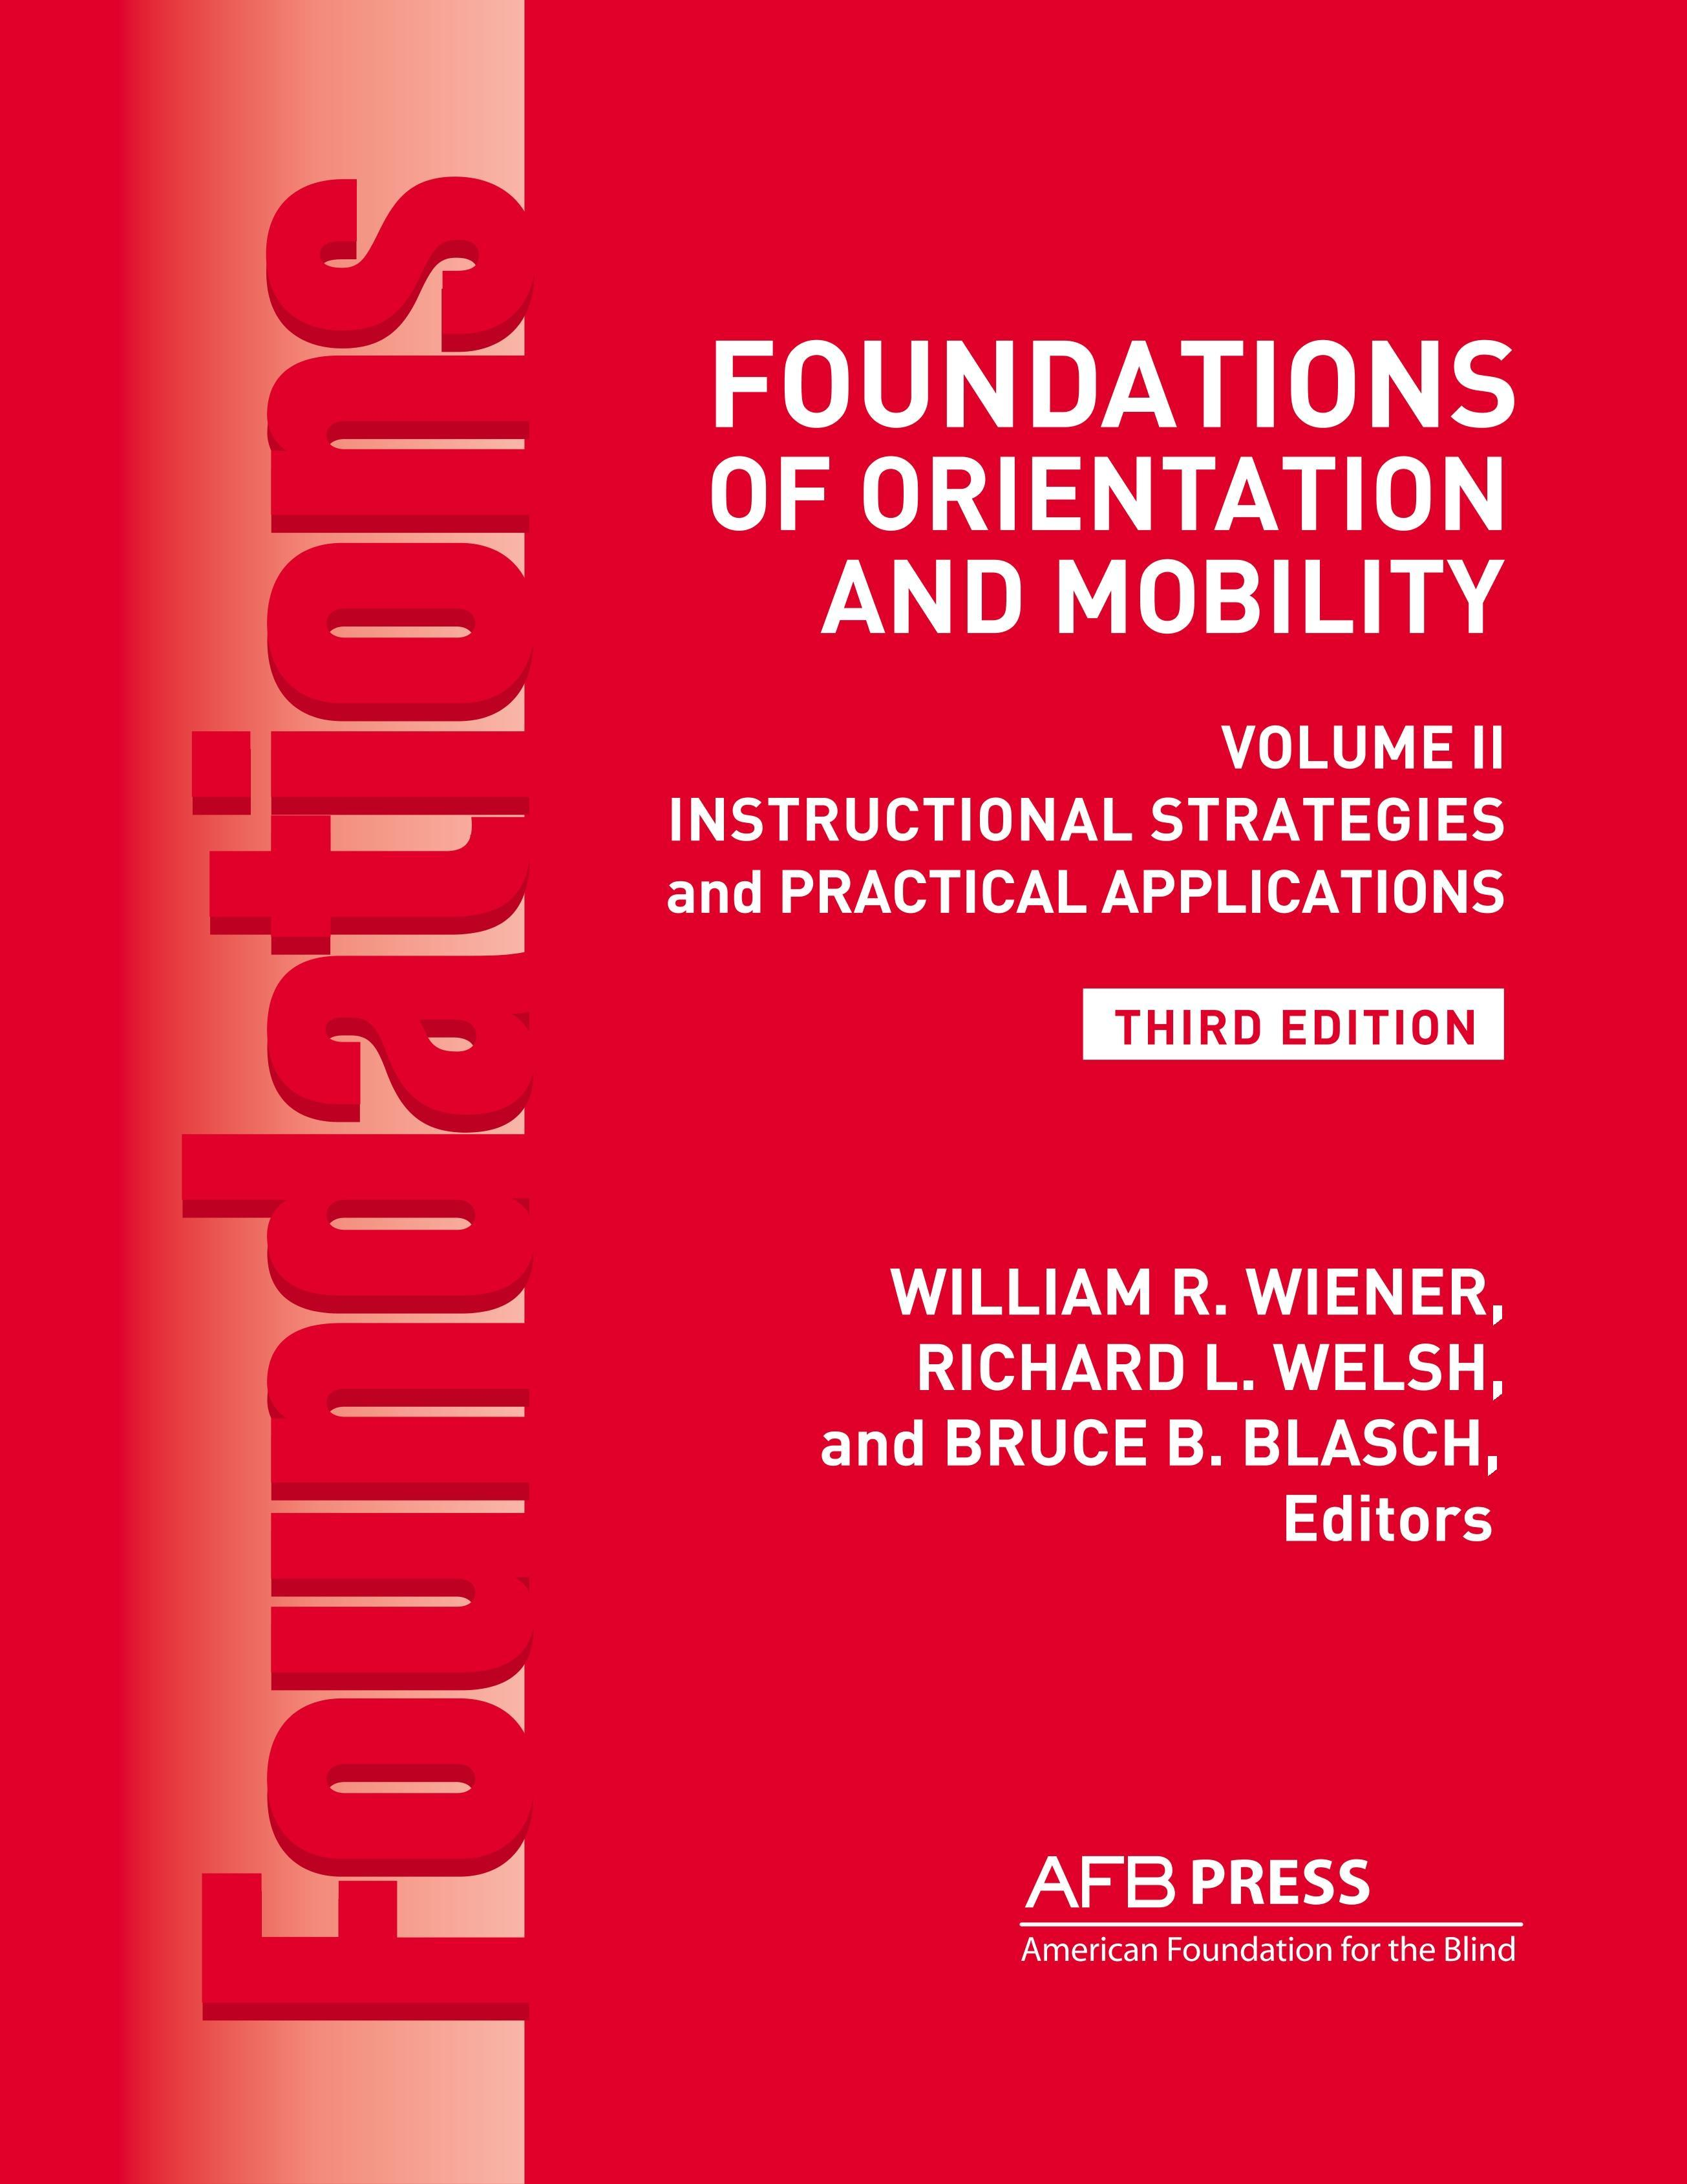 Foundations of Orientation and Mobility, 3rd Edition: Volume 2,